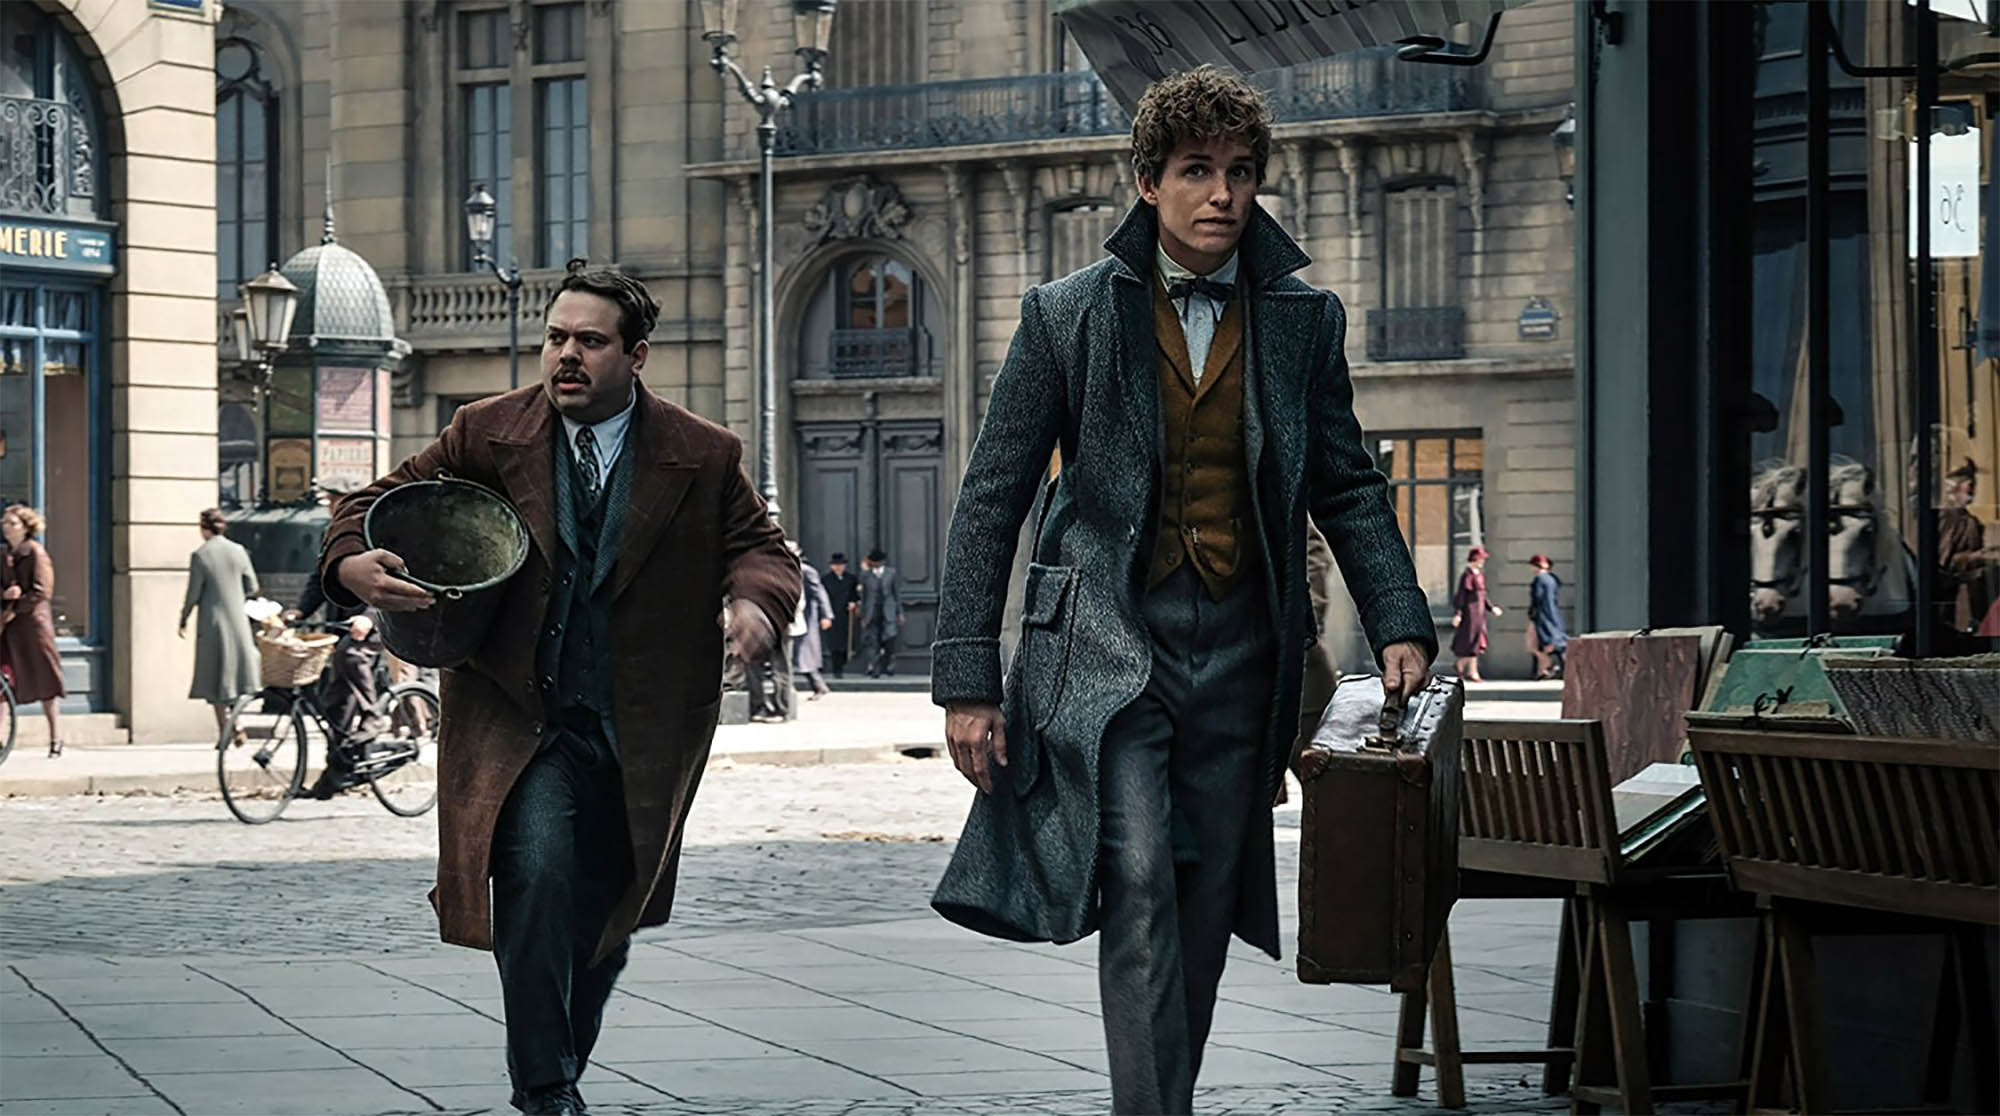 Warner Bros. Pictures' 'Fantastic Beasts: The Crimes of Grindelwald' is the second of five all-new adventures in J.K. Rowling's Wizarding World.